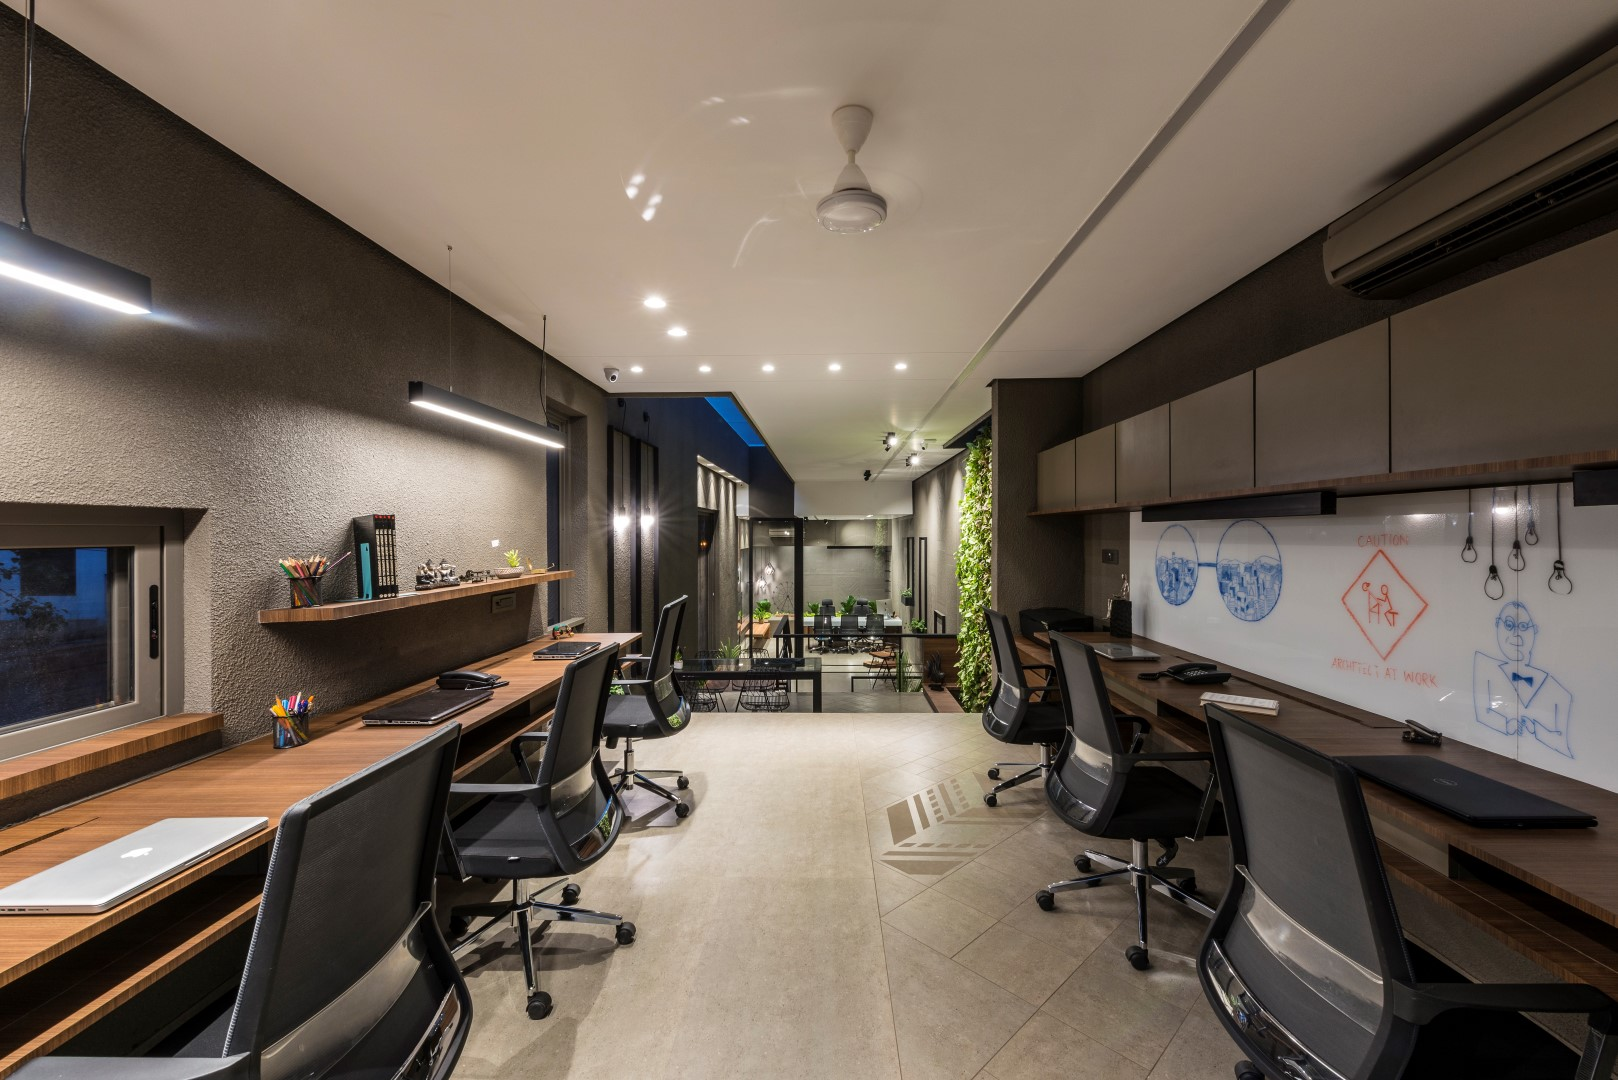 Both Materially And Chromatically, The Office Leans Towards The Earthy Side  Of The Scale. The Complete Building From Outside And Inside Is In Single  Tone Of ...